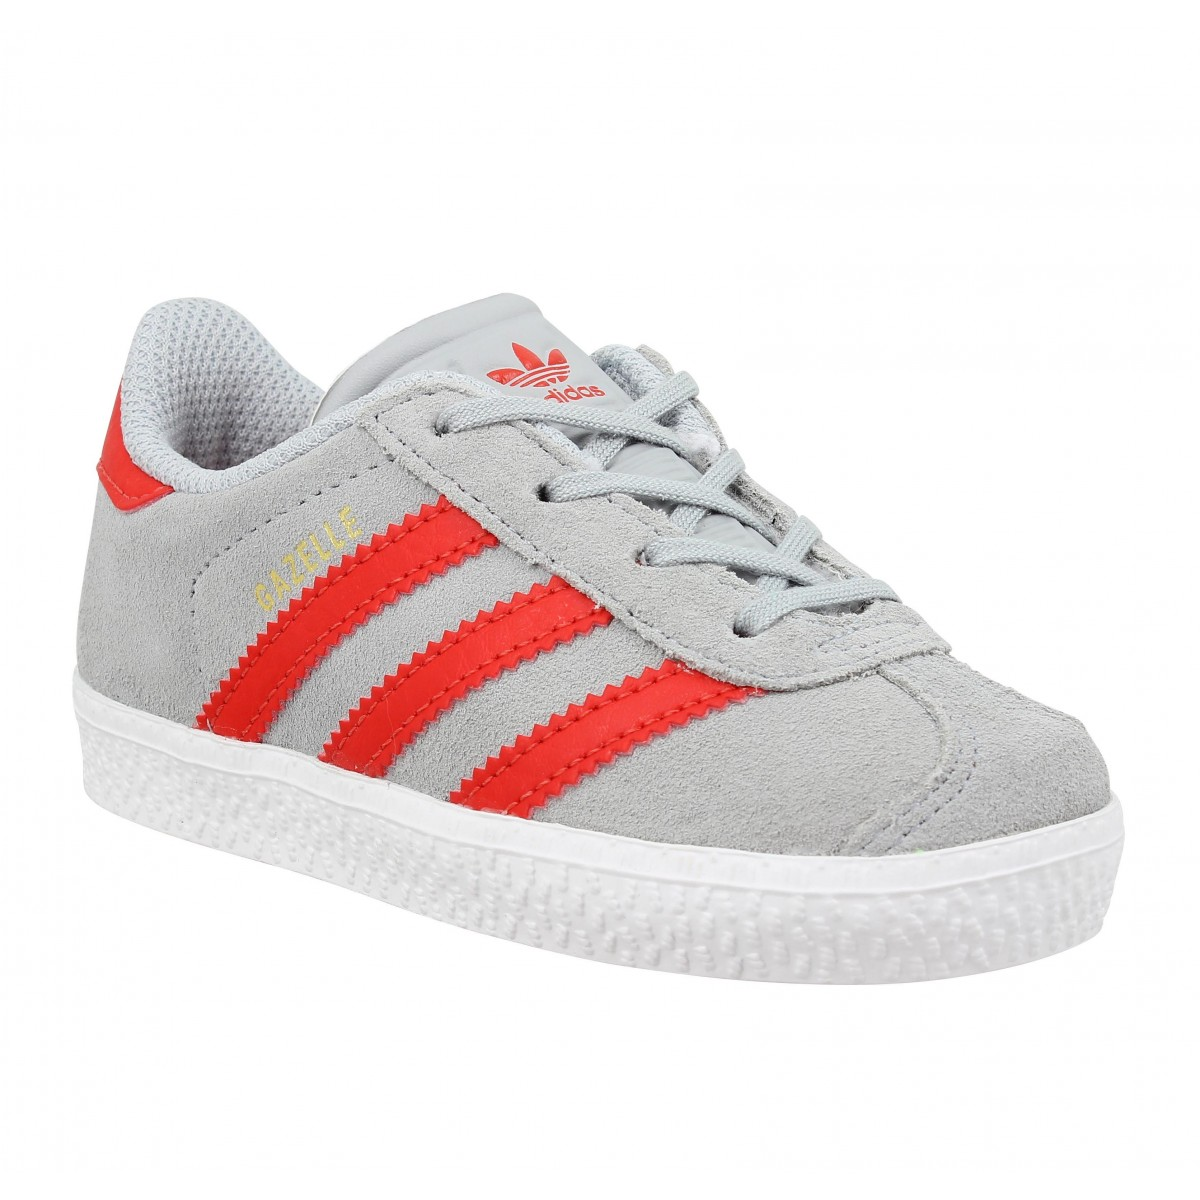 save off 105e3 4baef adidas gazelle enfant,chaussure enfant adidas tennis baskets gazelle 2cfc  bleu marine